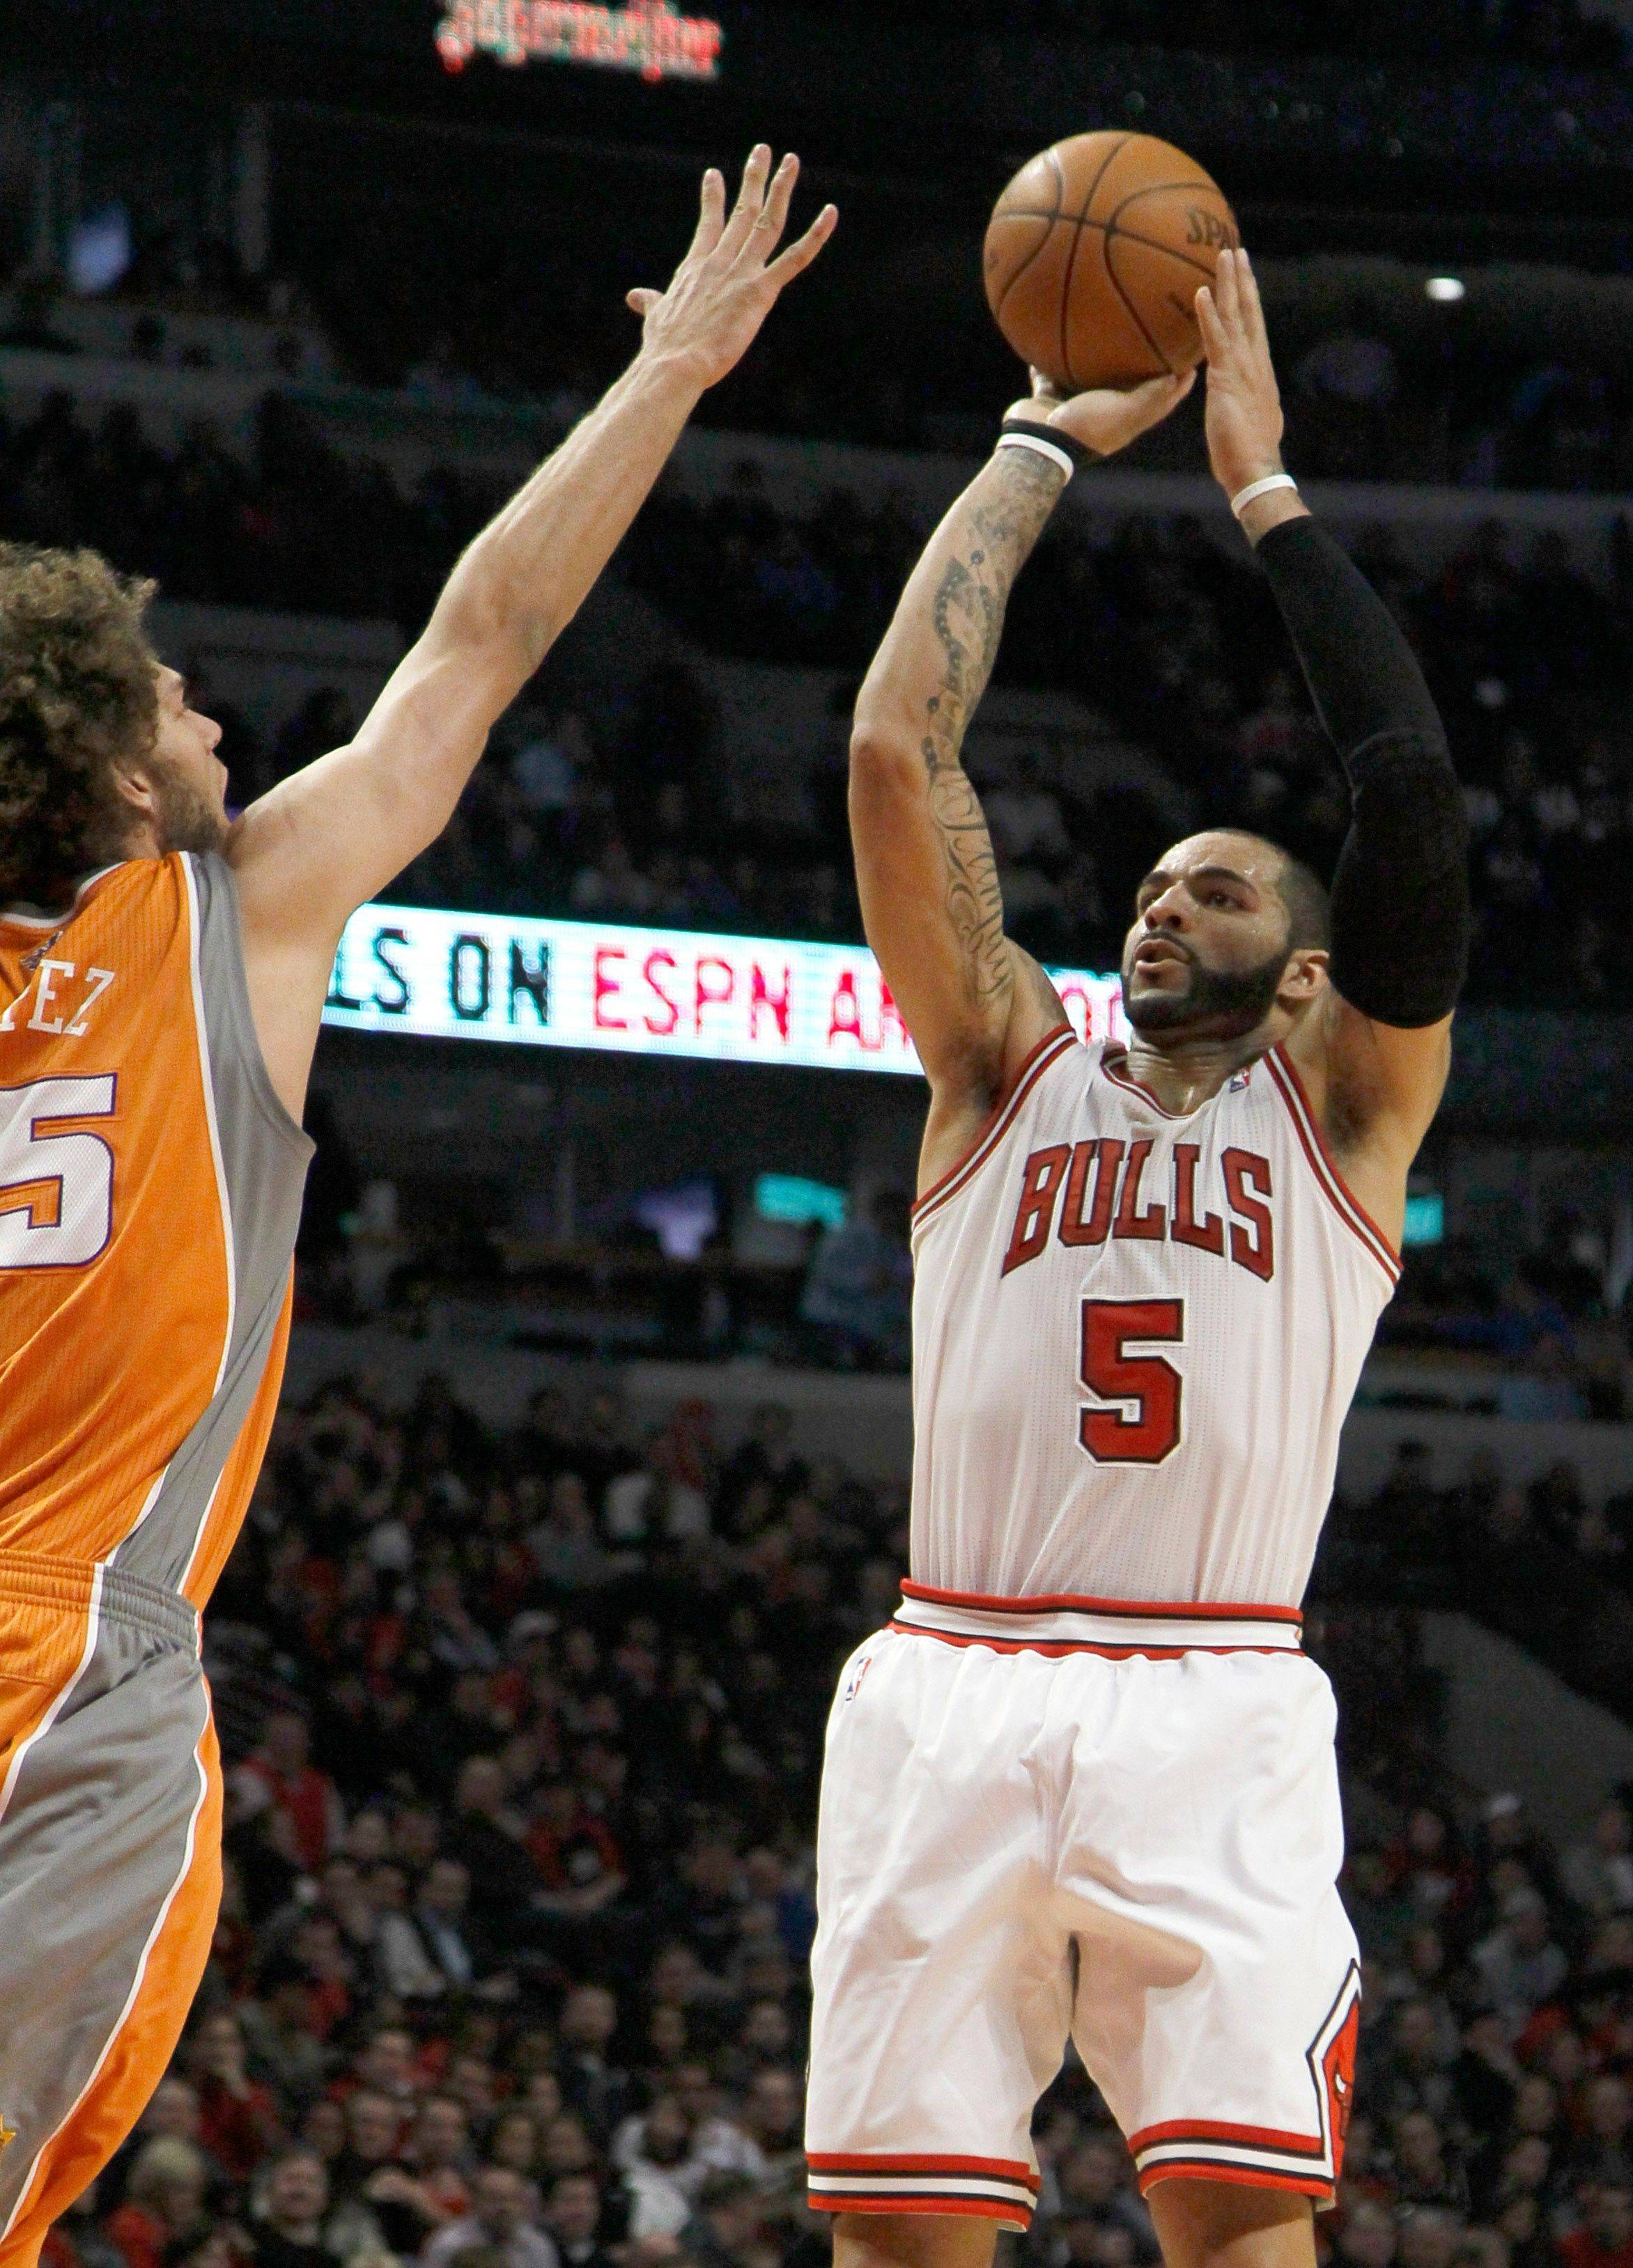 Bulls forward Carlos Boozer shoots over Phoenix Suns center Robin Lopez during the first half Tuesday night. Boozer led the Bulls with a season-high 31 points.